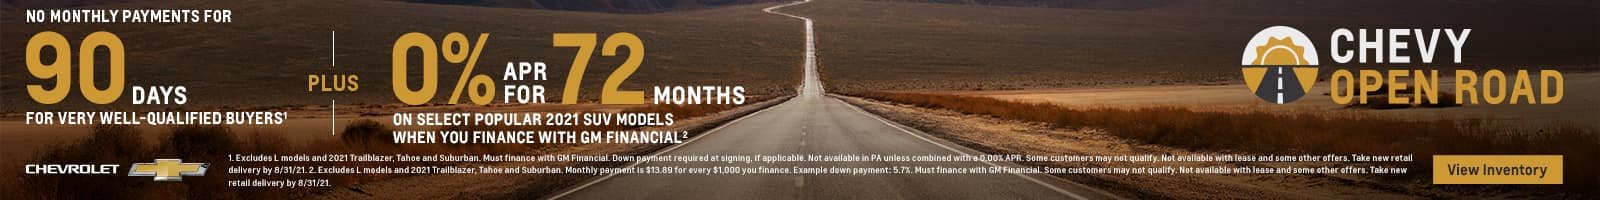 12_AUGUST_OPEN ROAD DEFERRAL PLUS APR_NATIONAL_1600x200_Banner